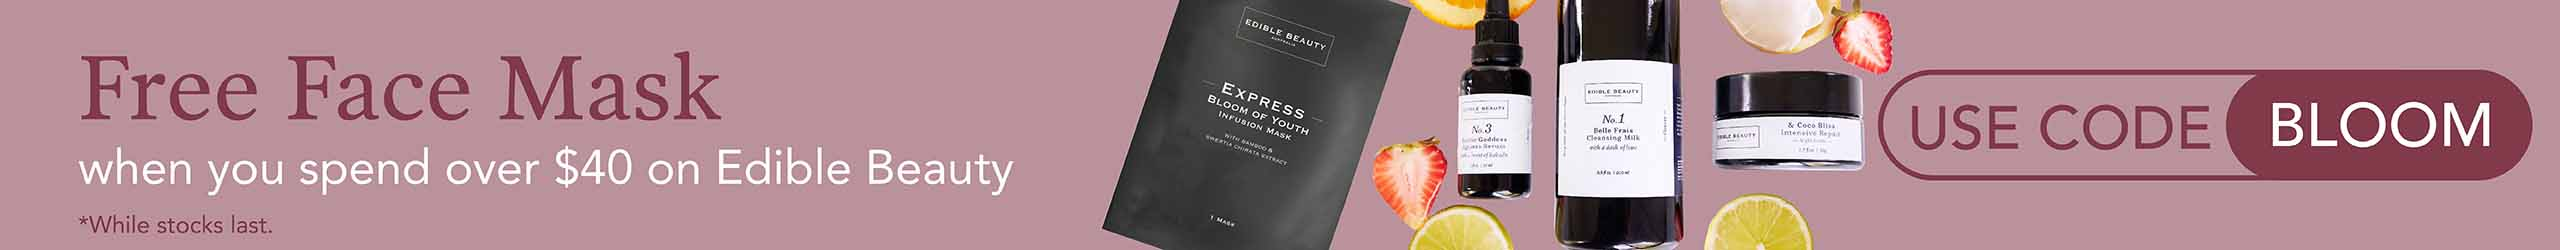 Free Gift from Edible Beauty